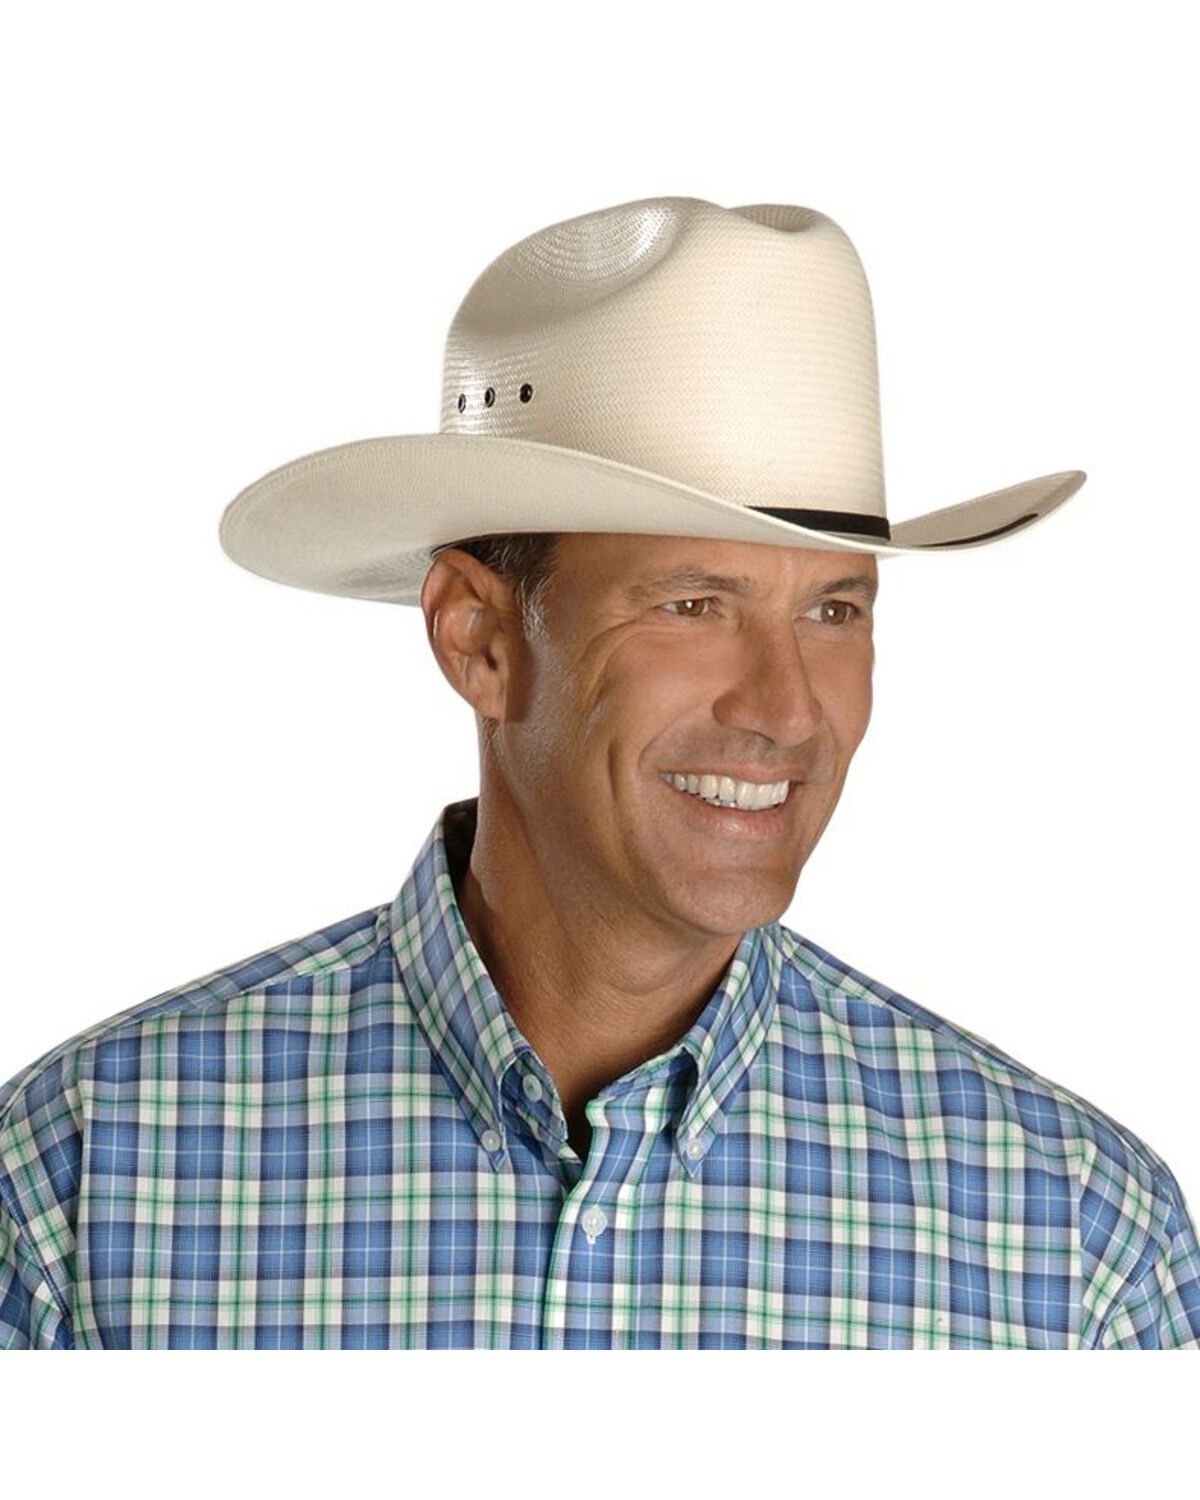 GENTS LADIES STRAW COWBOY HAT SELECT STYLE ONE SIZE NEW